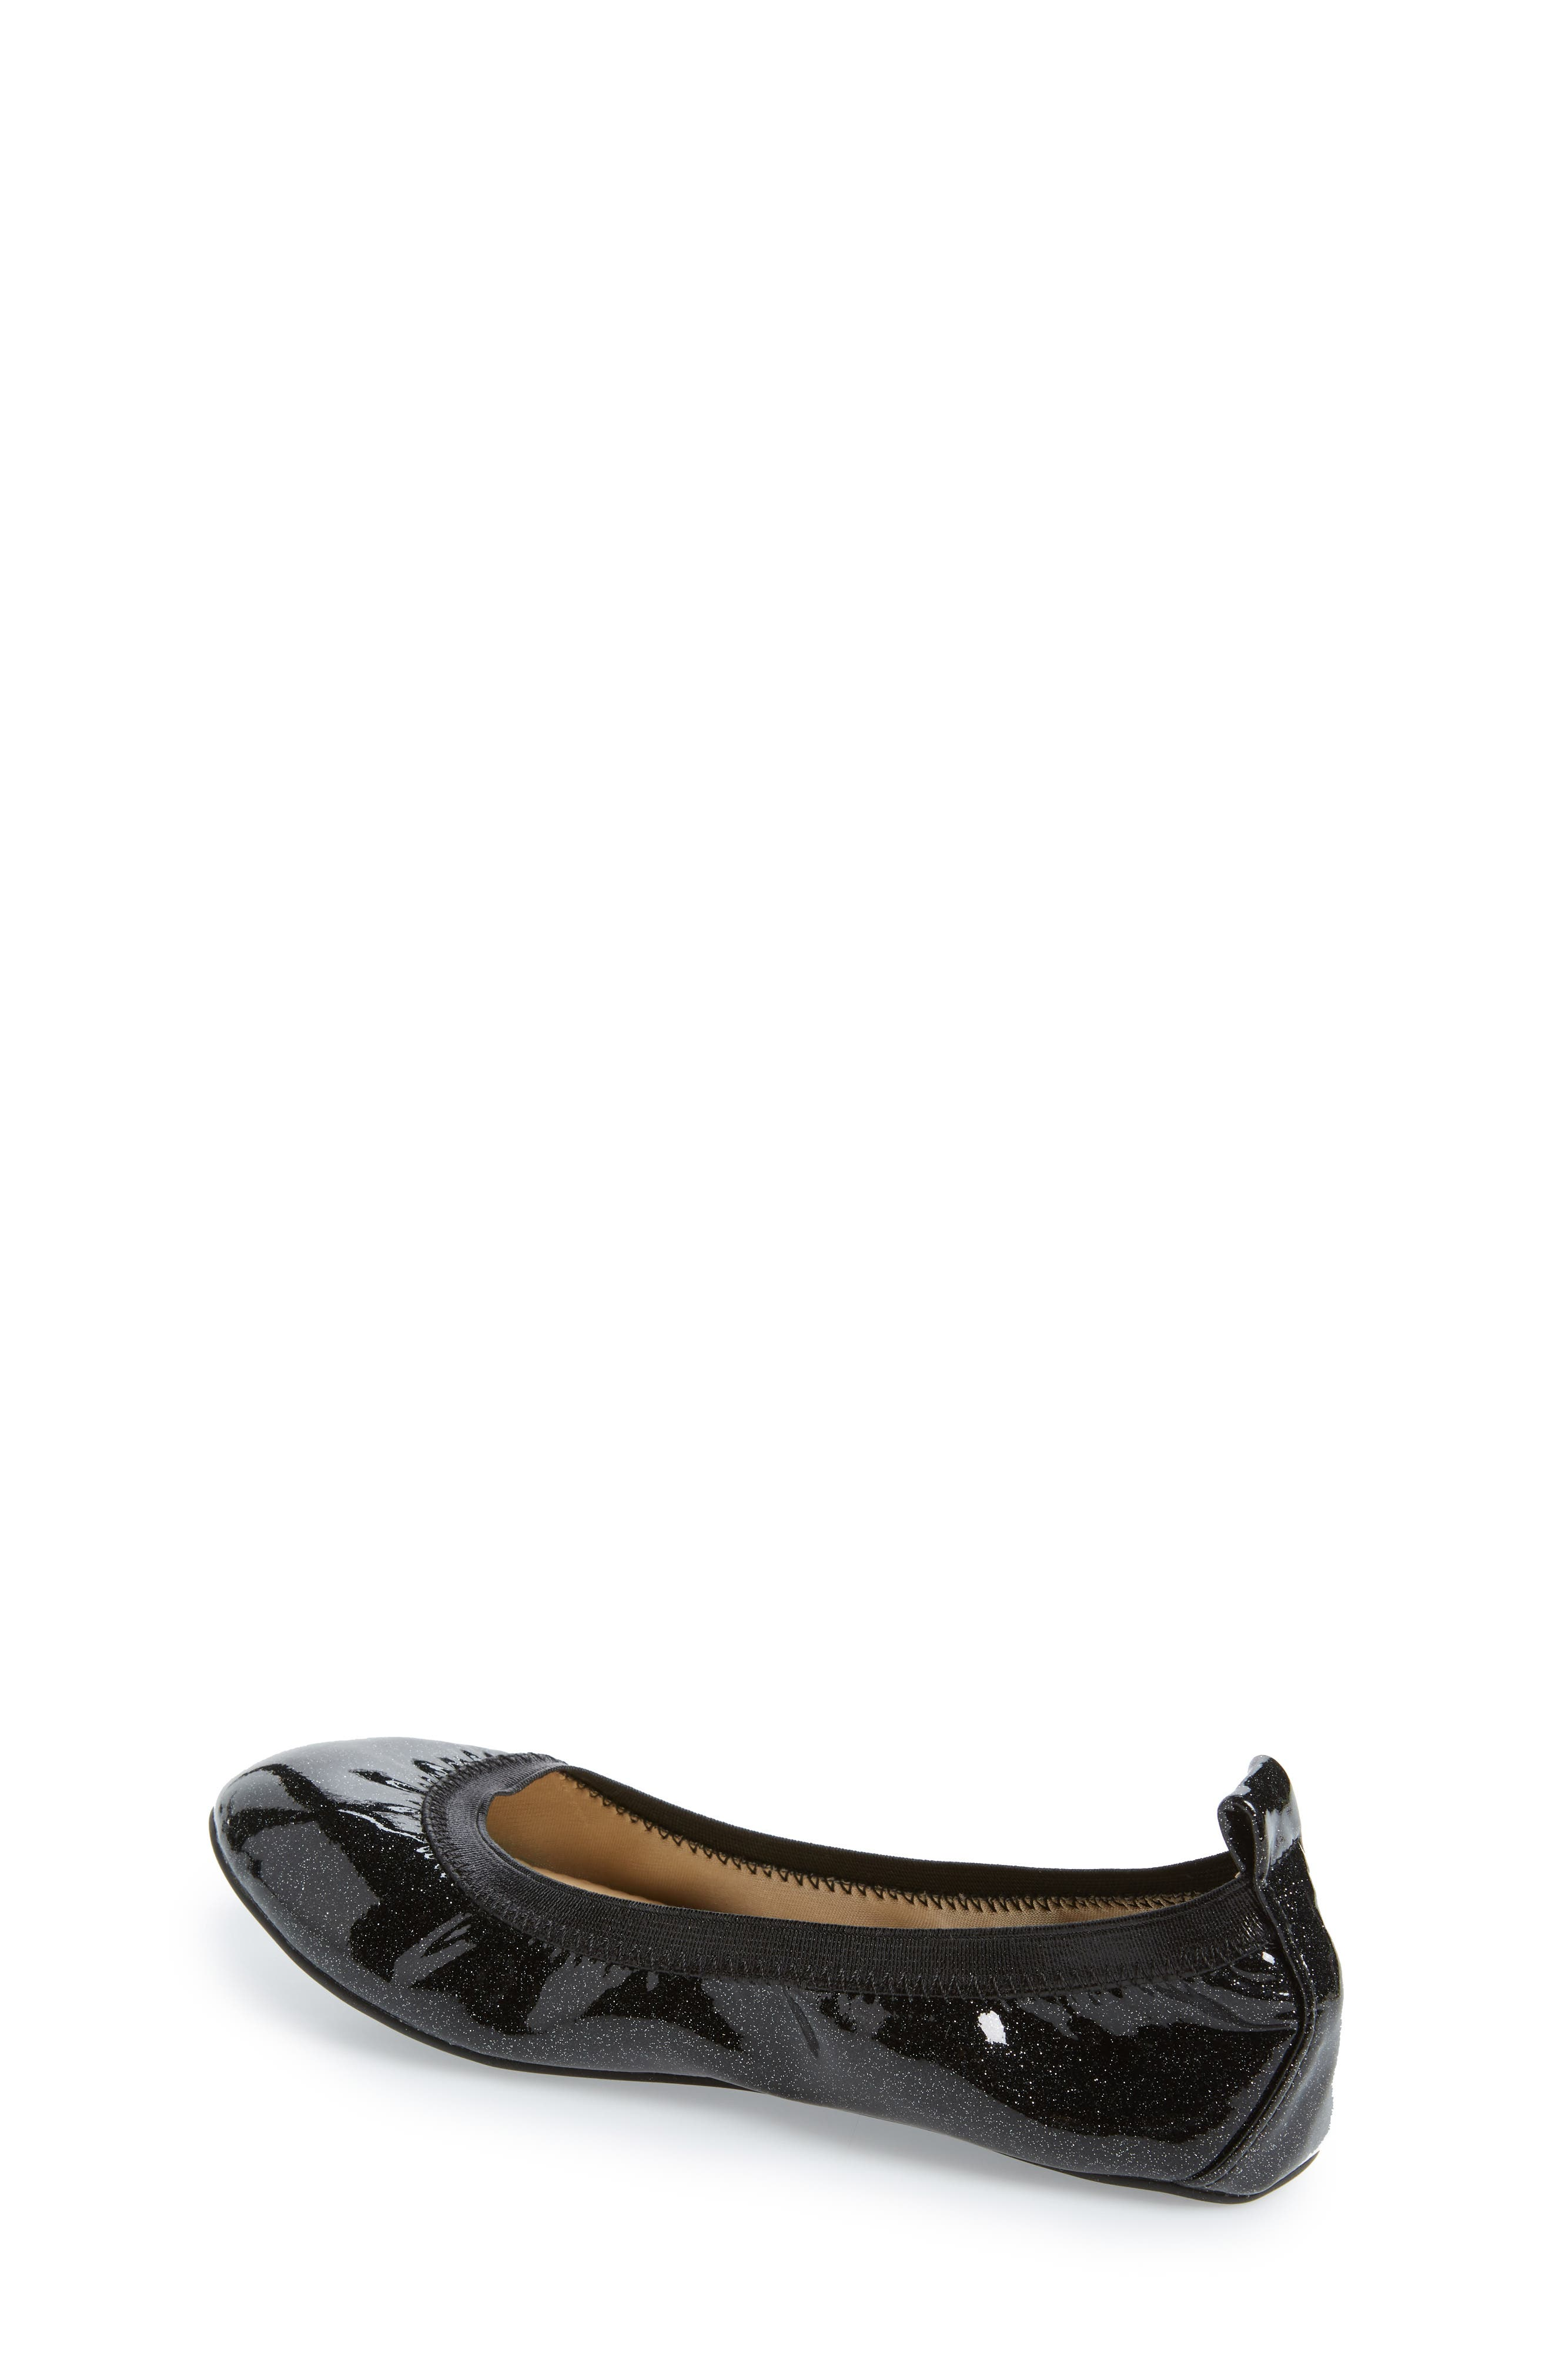 Miss Samara Ballet Flat,                             Alternate thumbnail 2, color,                             BLACK PATENT GLITTER